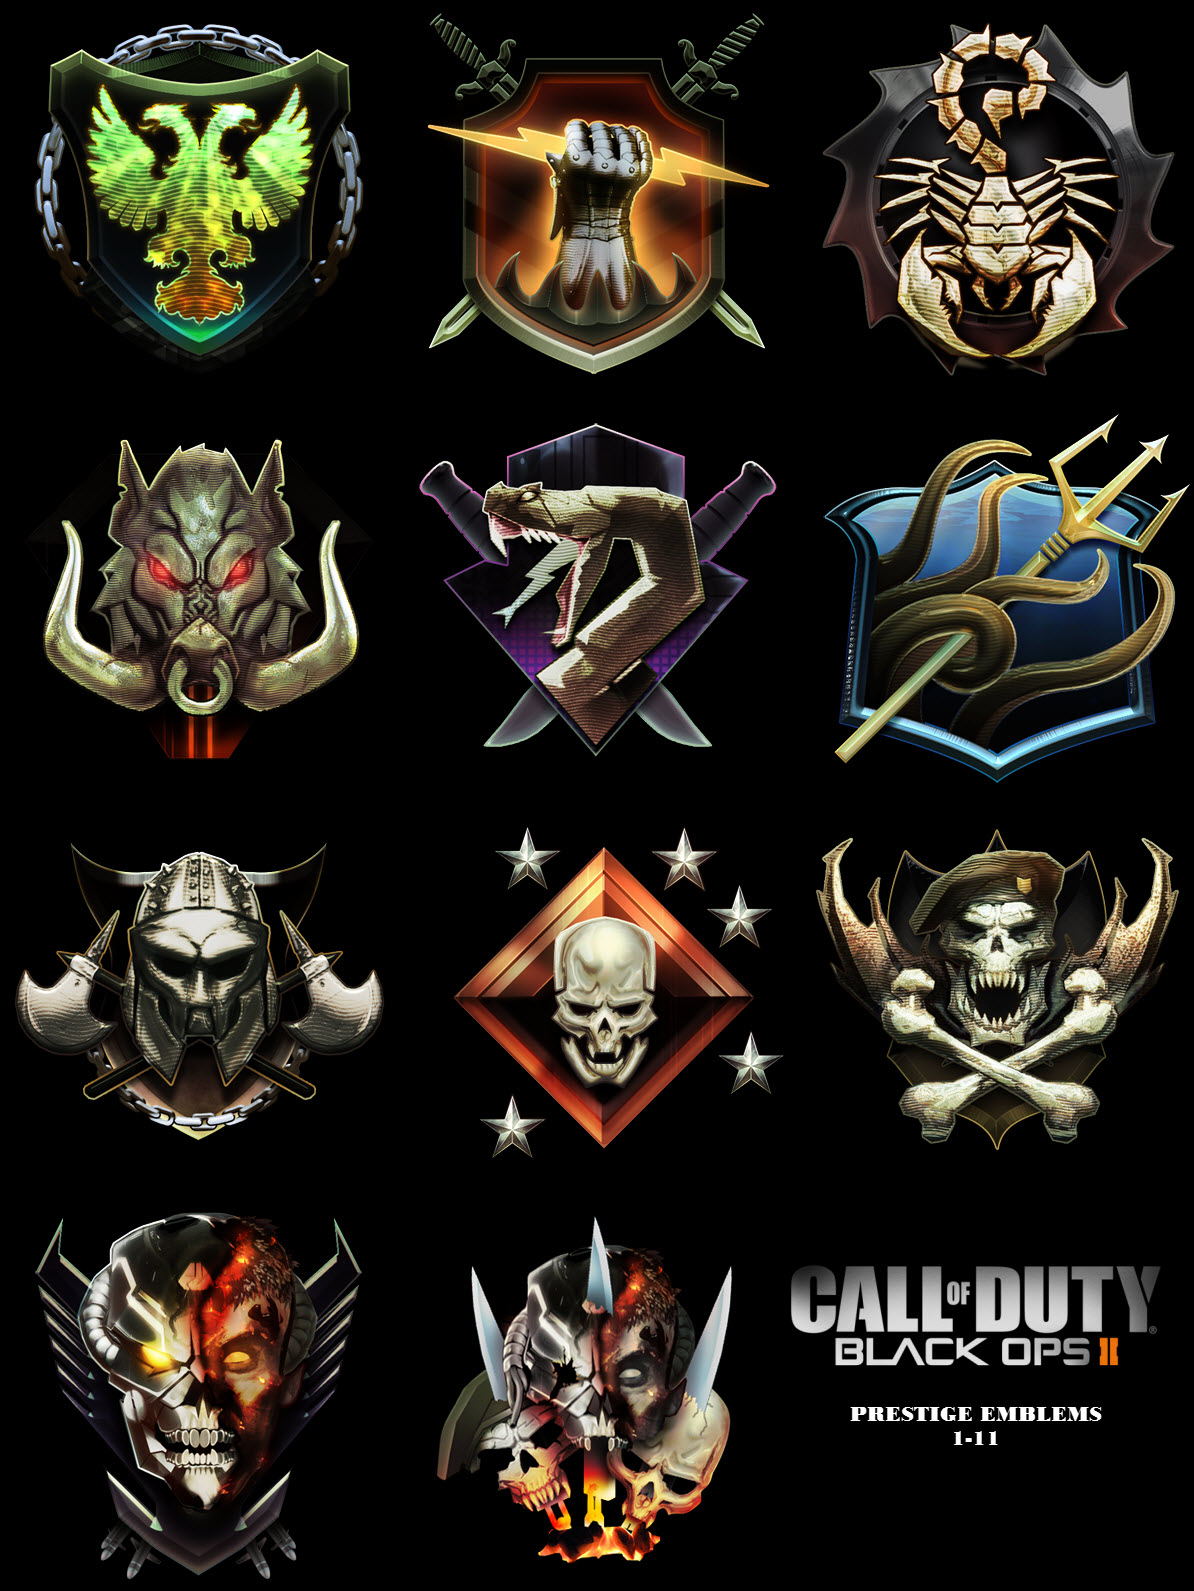 Call of duty black ops 2 prestige emblems high res gamechup call of duty black ops 2 prestige emblems high res gamechup video game news reviews features guides voltagebd Gallery